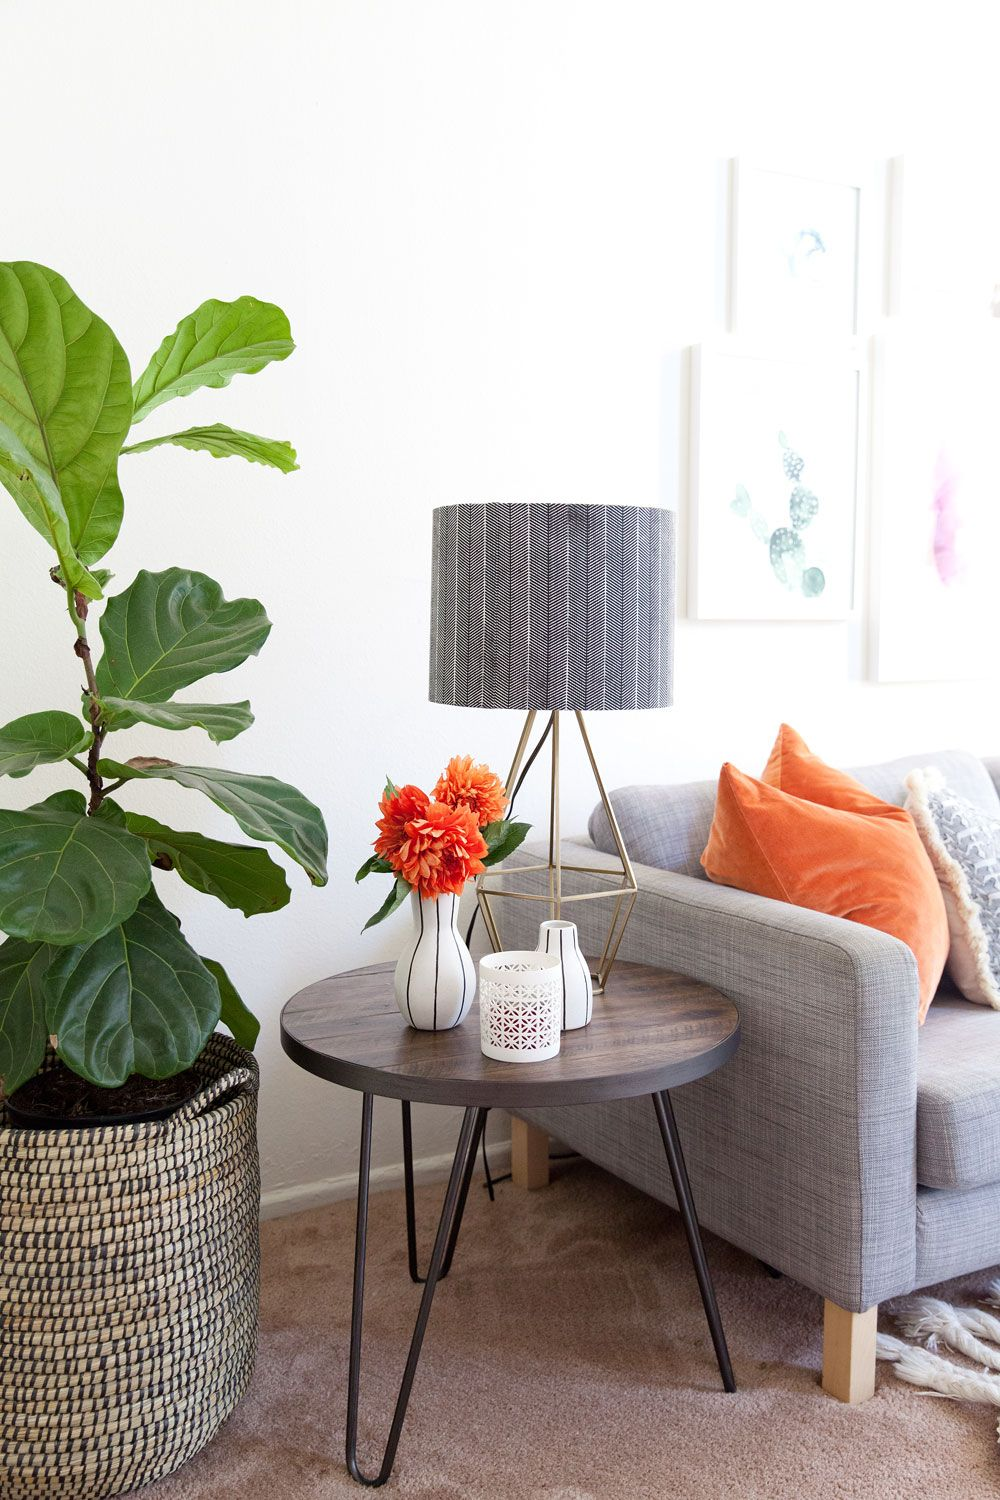 LIVING ROOM MAKEOVER: PART 2 | Living rooms, Room and Bohemian décor